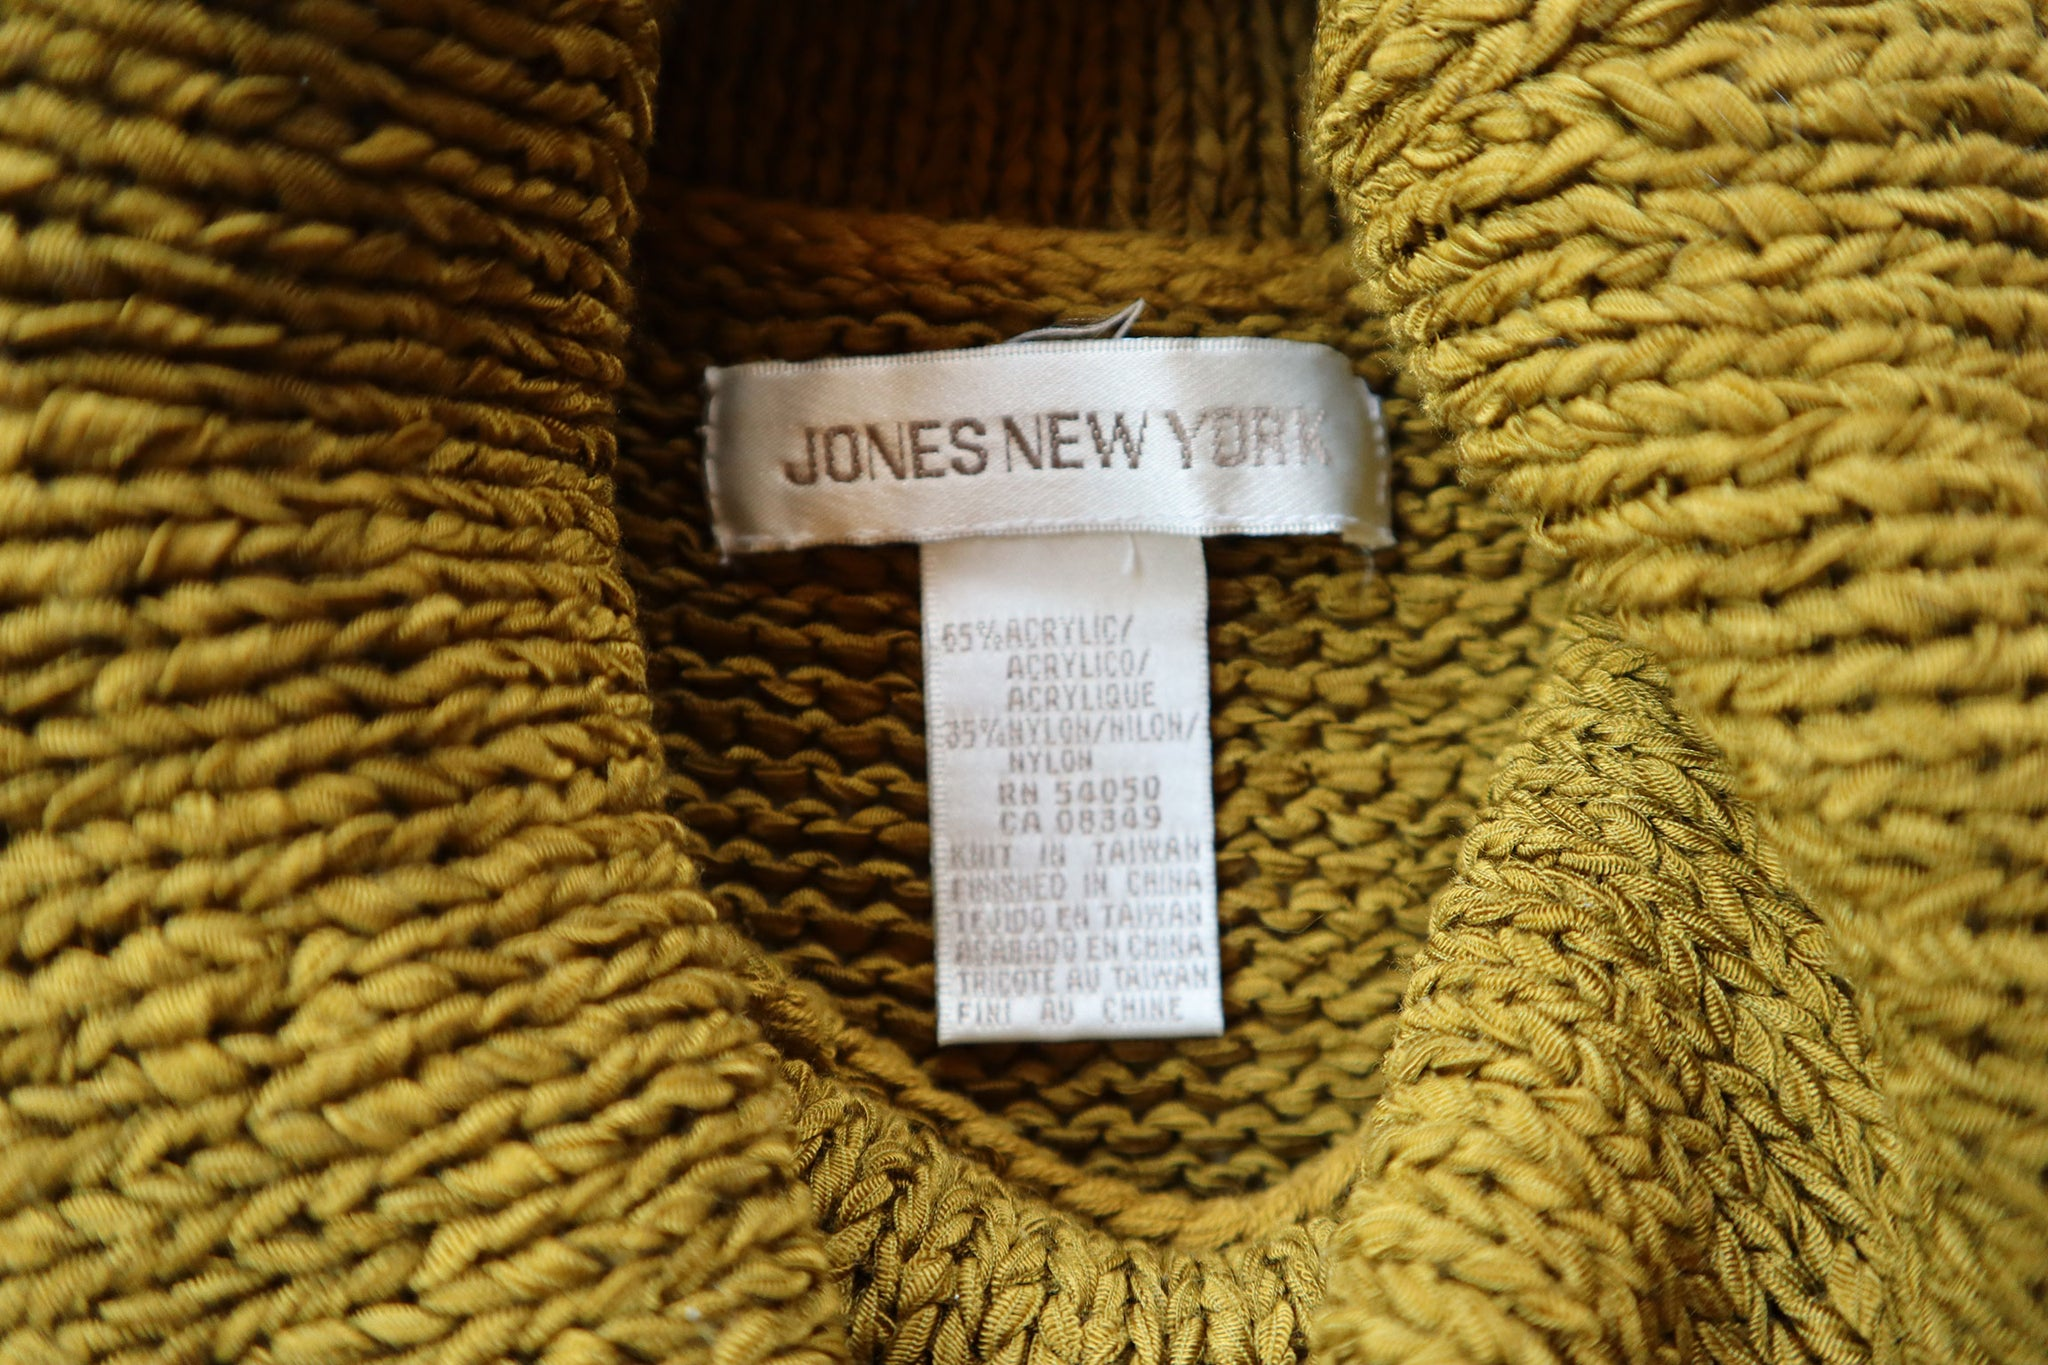 Jones NY Pea Green Woven Knit Sleeveless Turtleneck Sweater